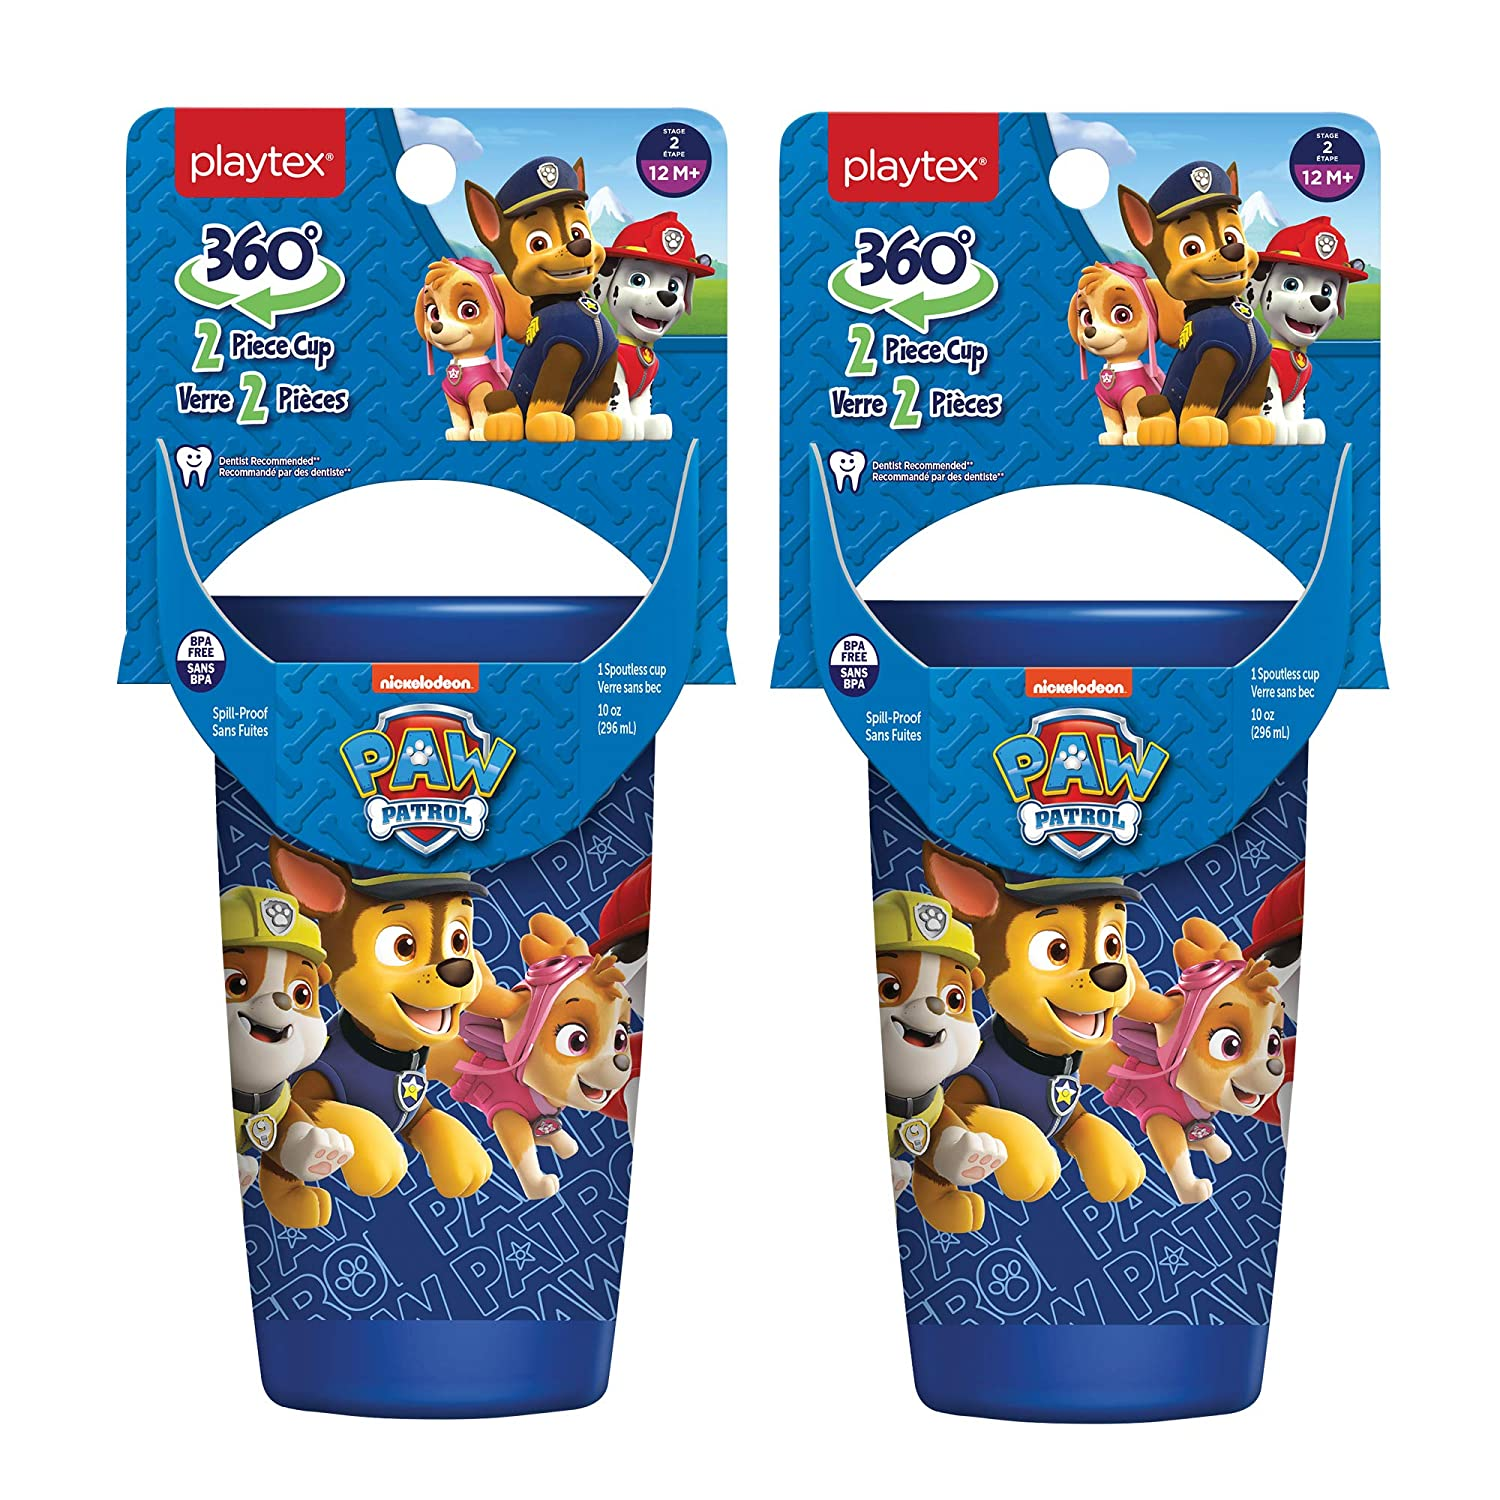 Playtex Sipsters Stage 2 360 Degree Paw Patrol Spill-Proof, Leak-Proof, Break-Proof Spoutless Cup for Boys, 10 Ounce - Pack of 2